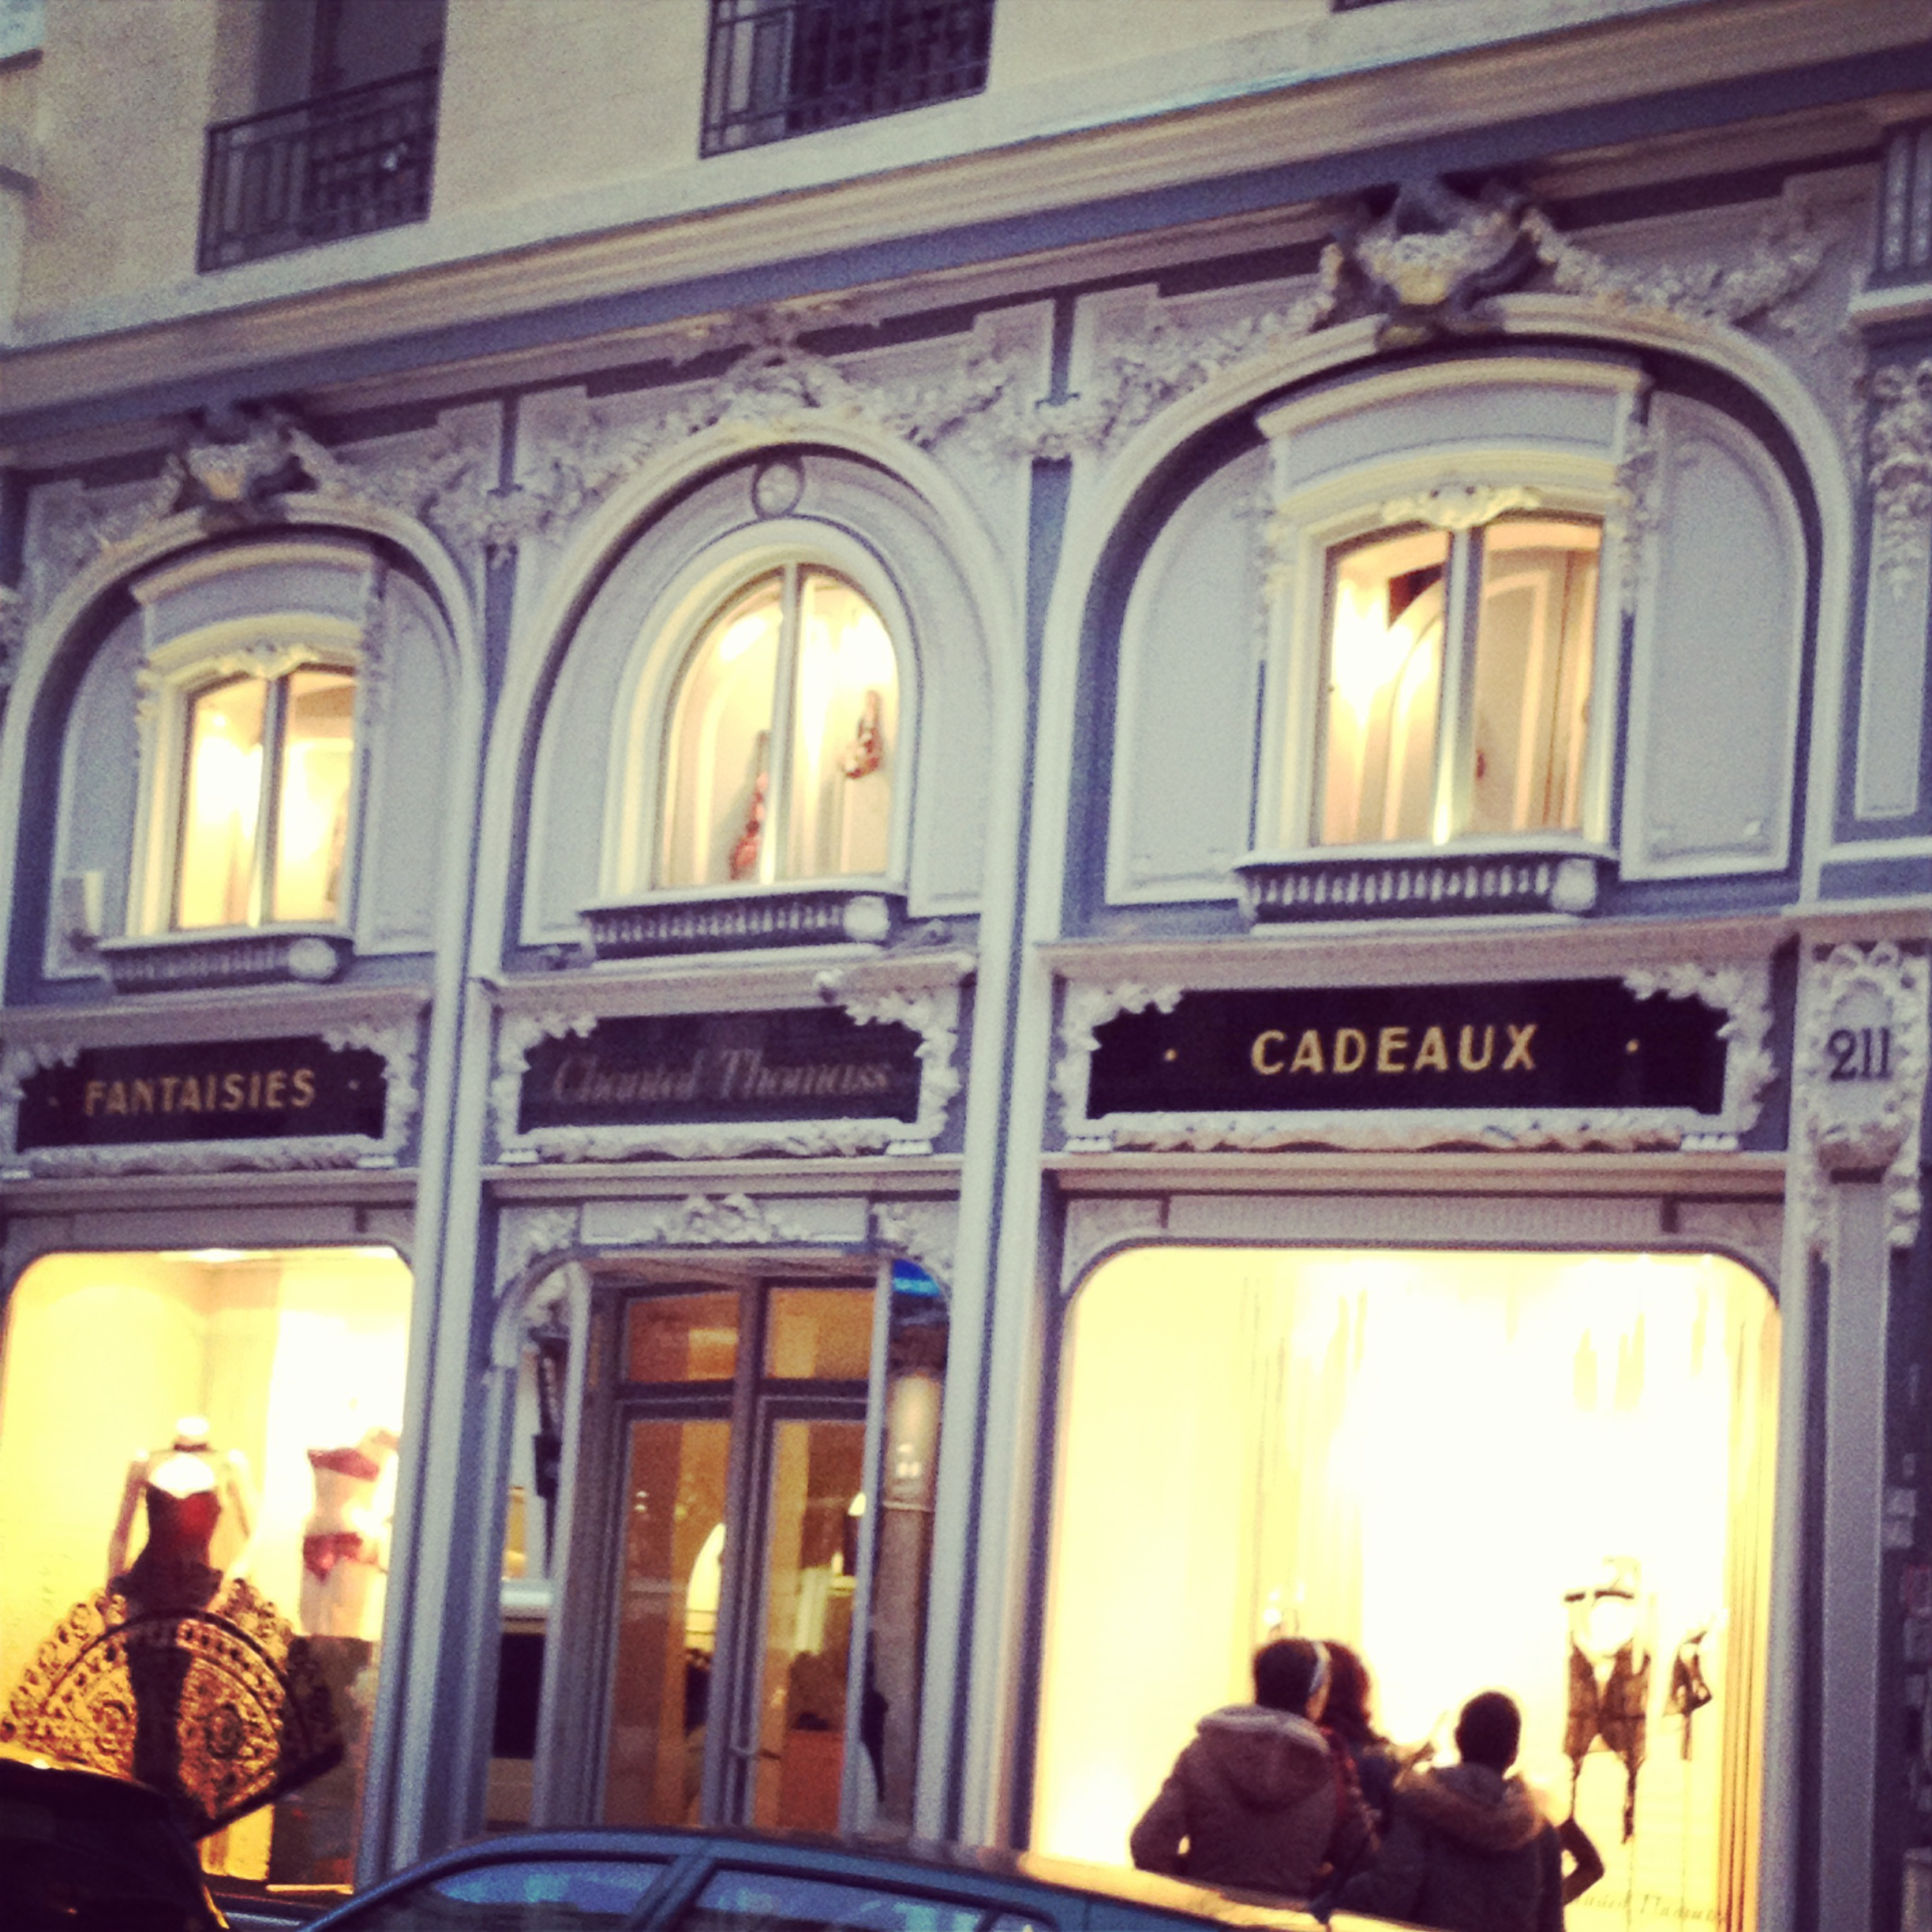 Incredible lingerie store on Rue Saint Honore ....